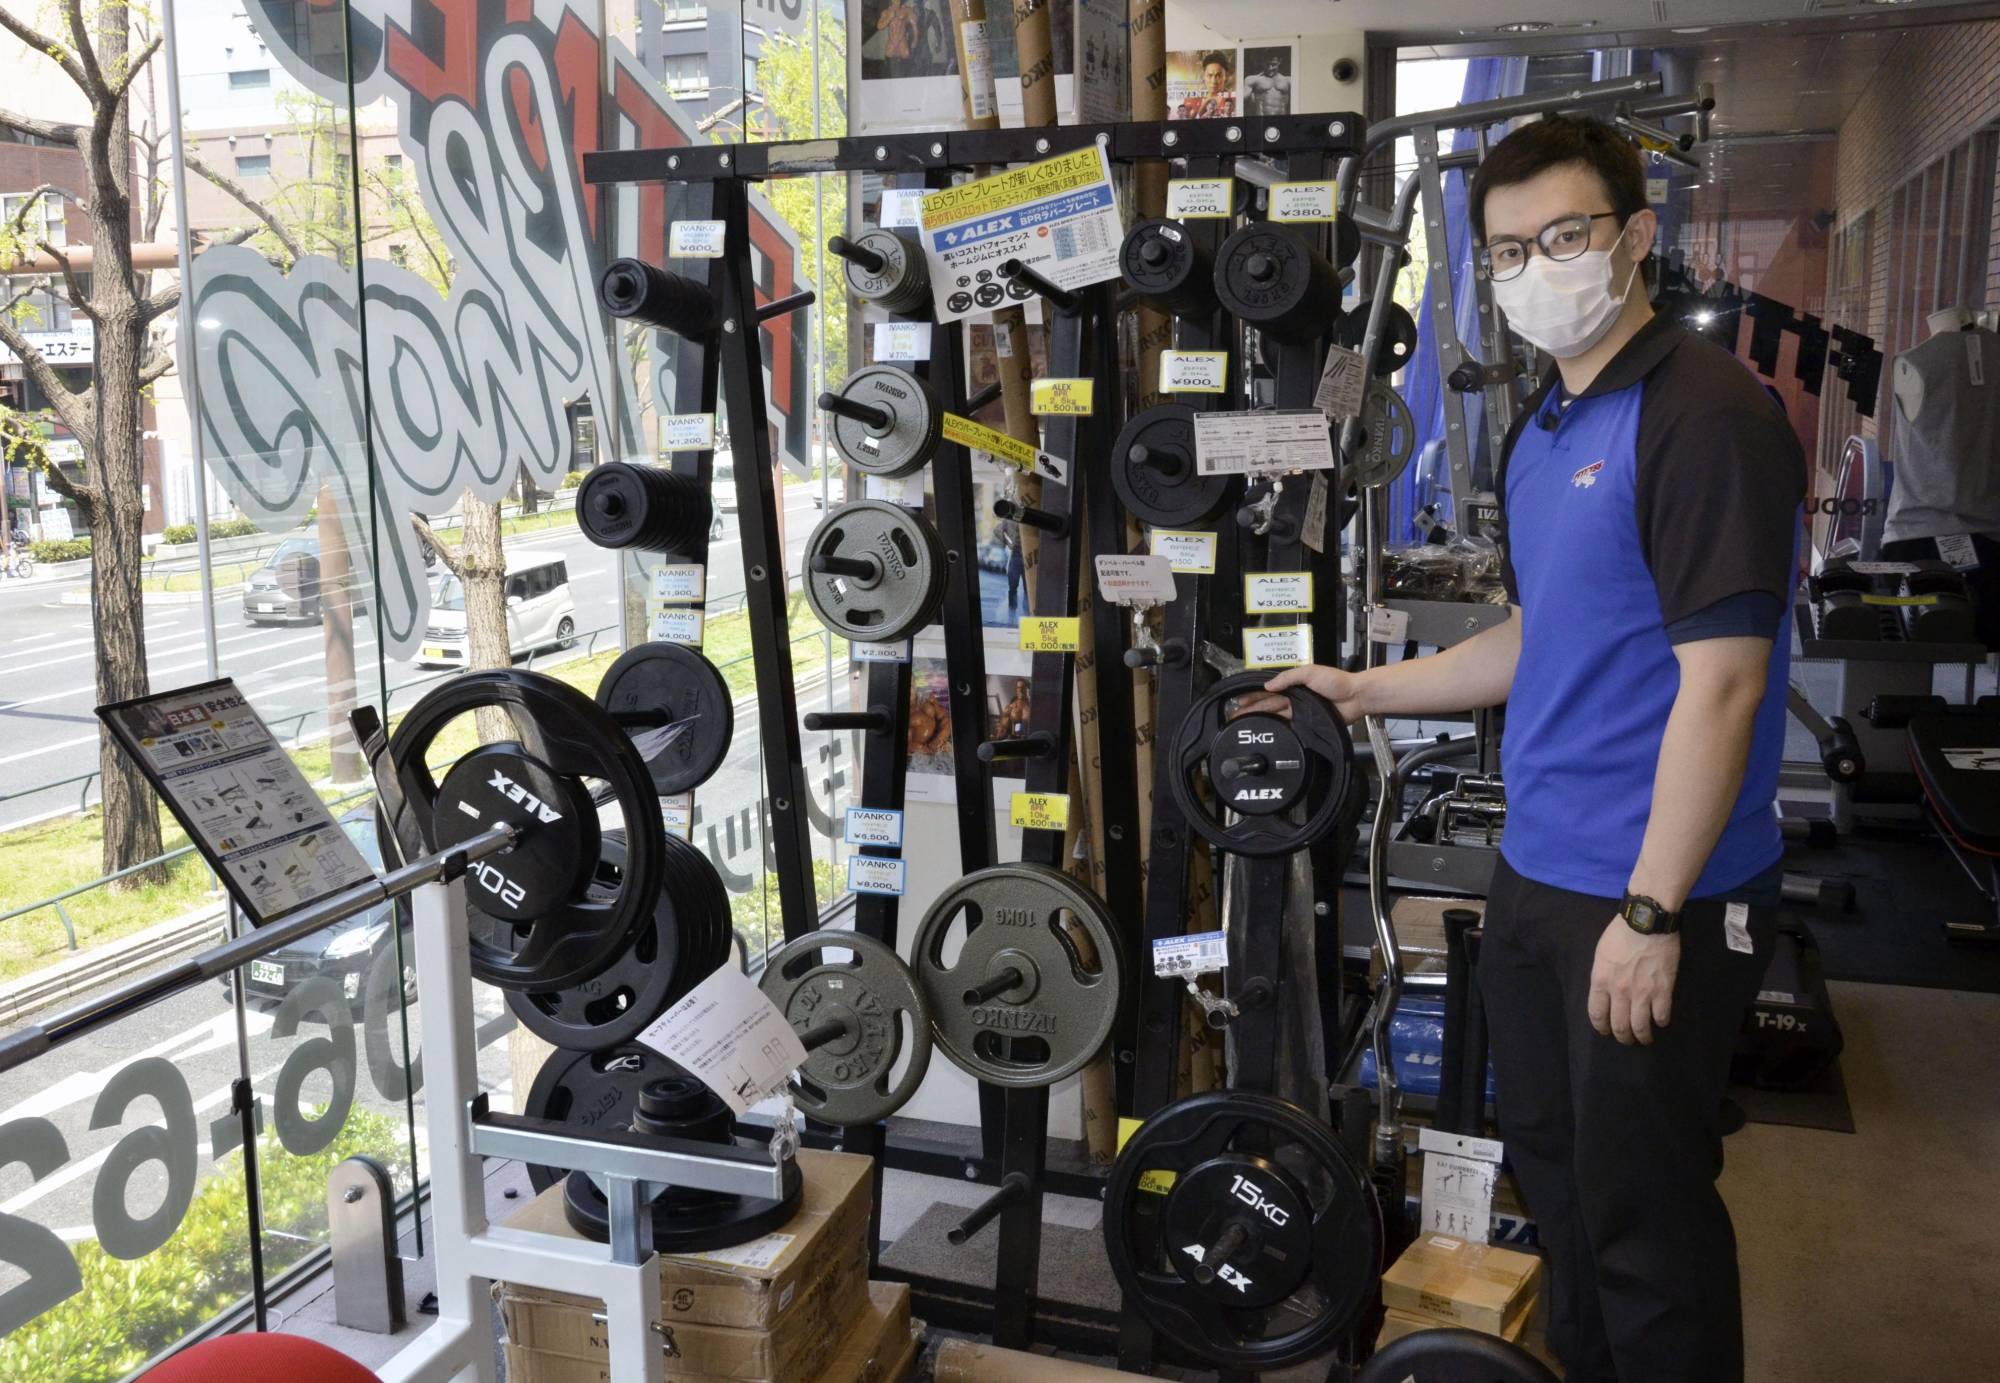 Pump it up: A store selling fitness equipment in Osaka is doing good business as gyms close and people stock up for at-home workouts. | KYODO